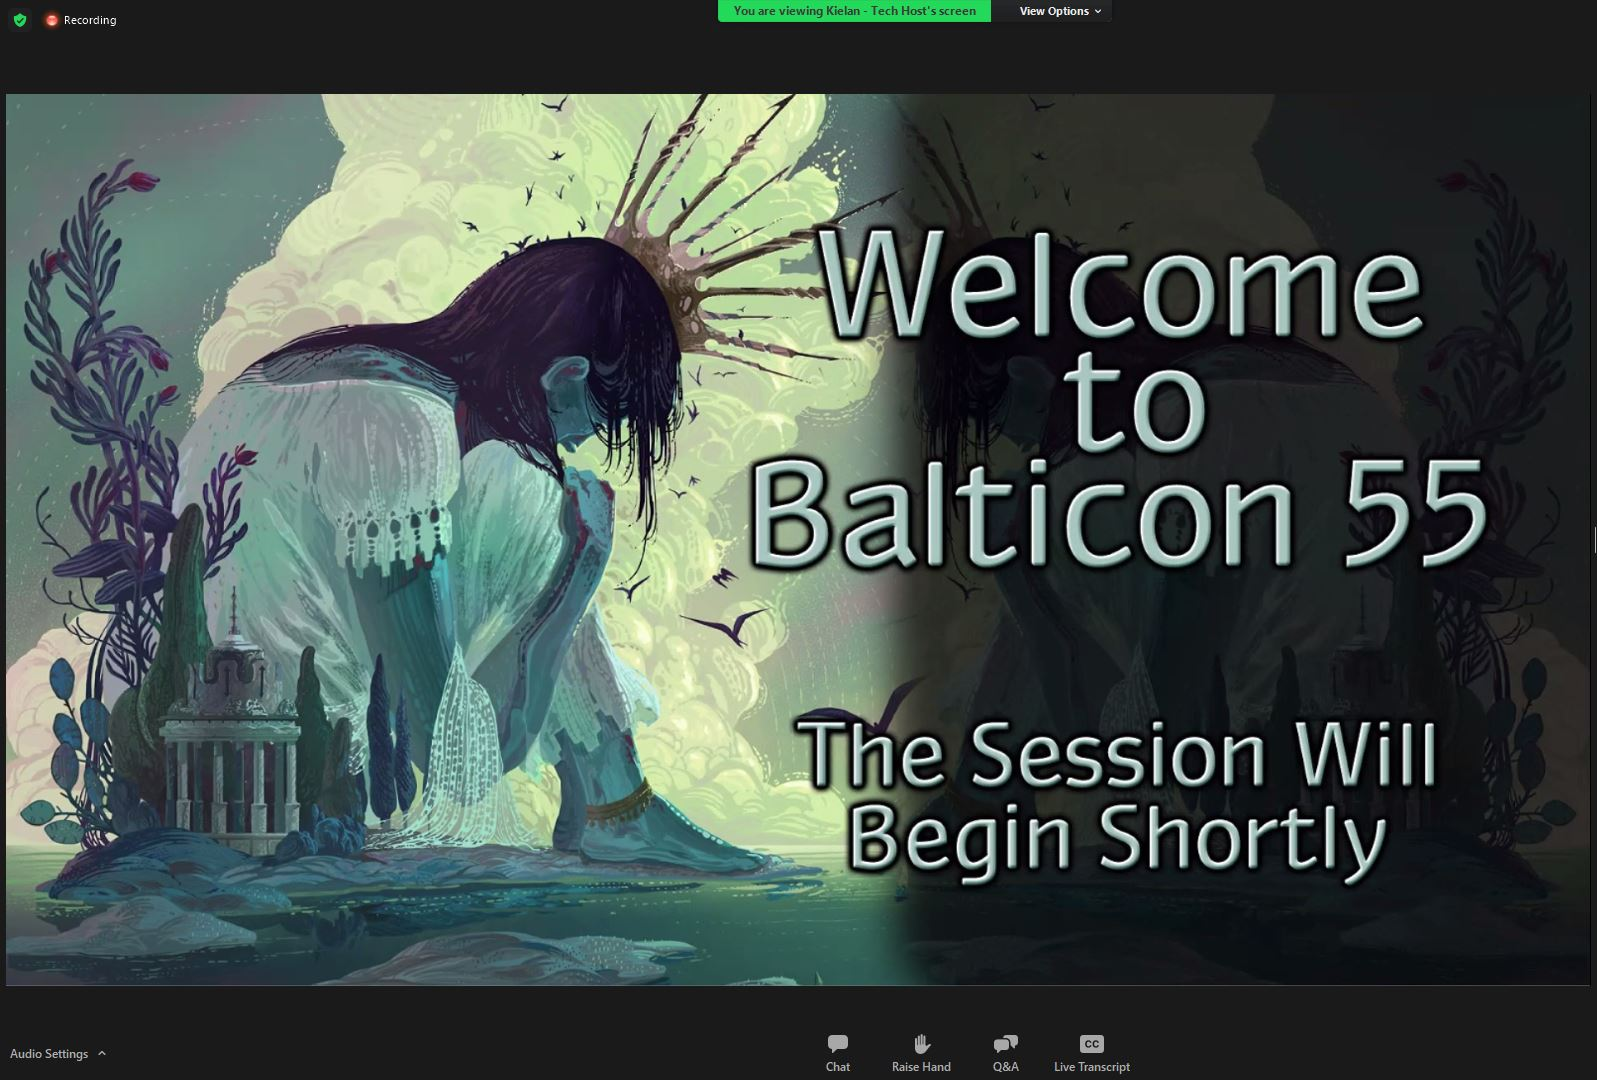 Picture features a person sitting on a very small island. Next to the person there is a small building and some trees. To the right there is an inscription 'Welcome to Balticon 55 The Session Will begin Shortly'.